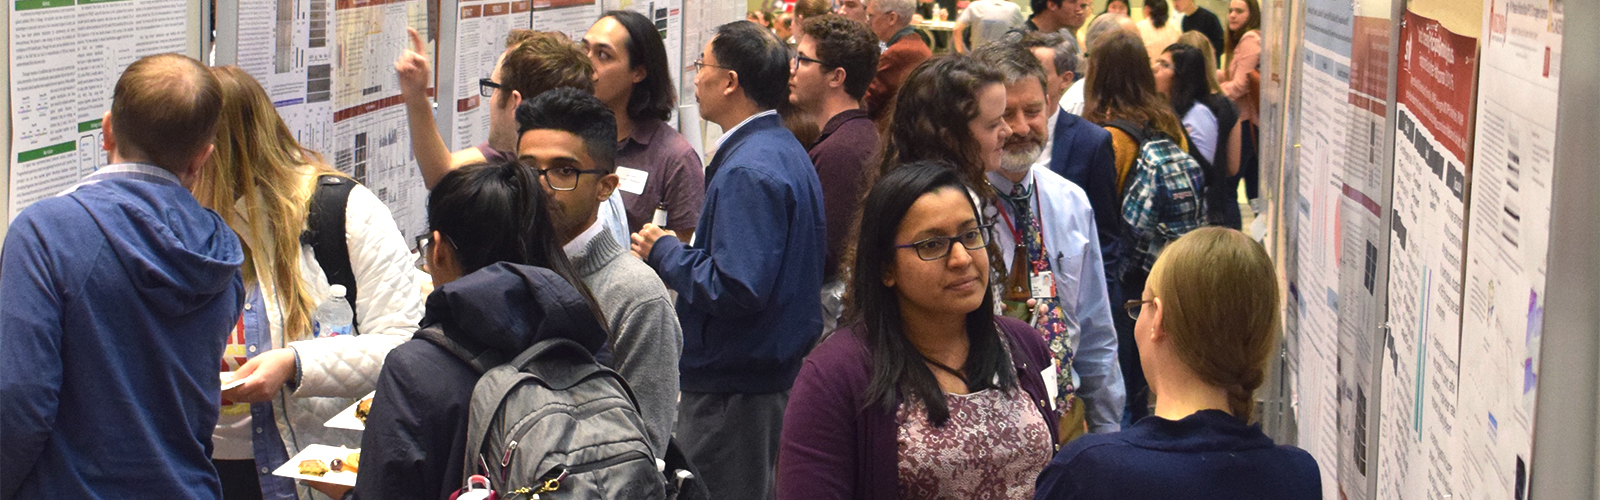 Attendees of the 2019 UWCCC Research Retreat participate in the scientific poster sessions, crowding between rows of poster boards.